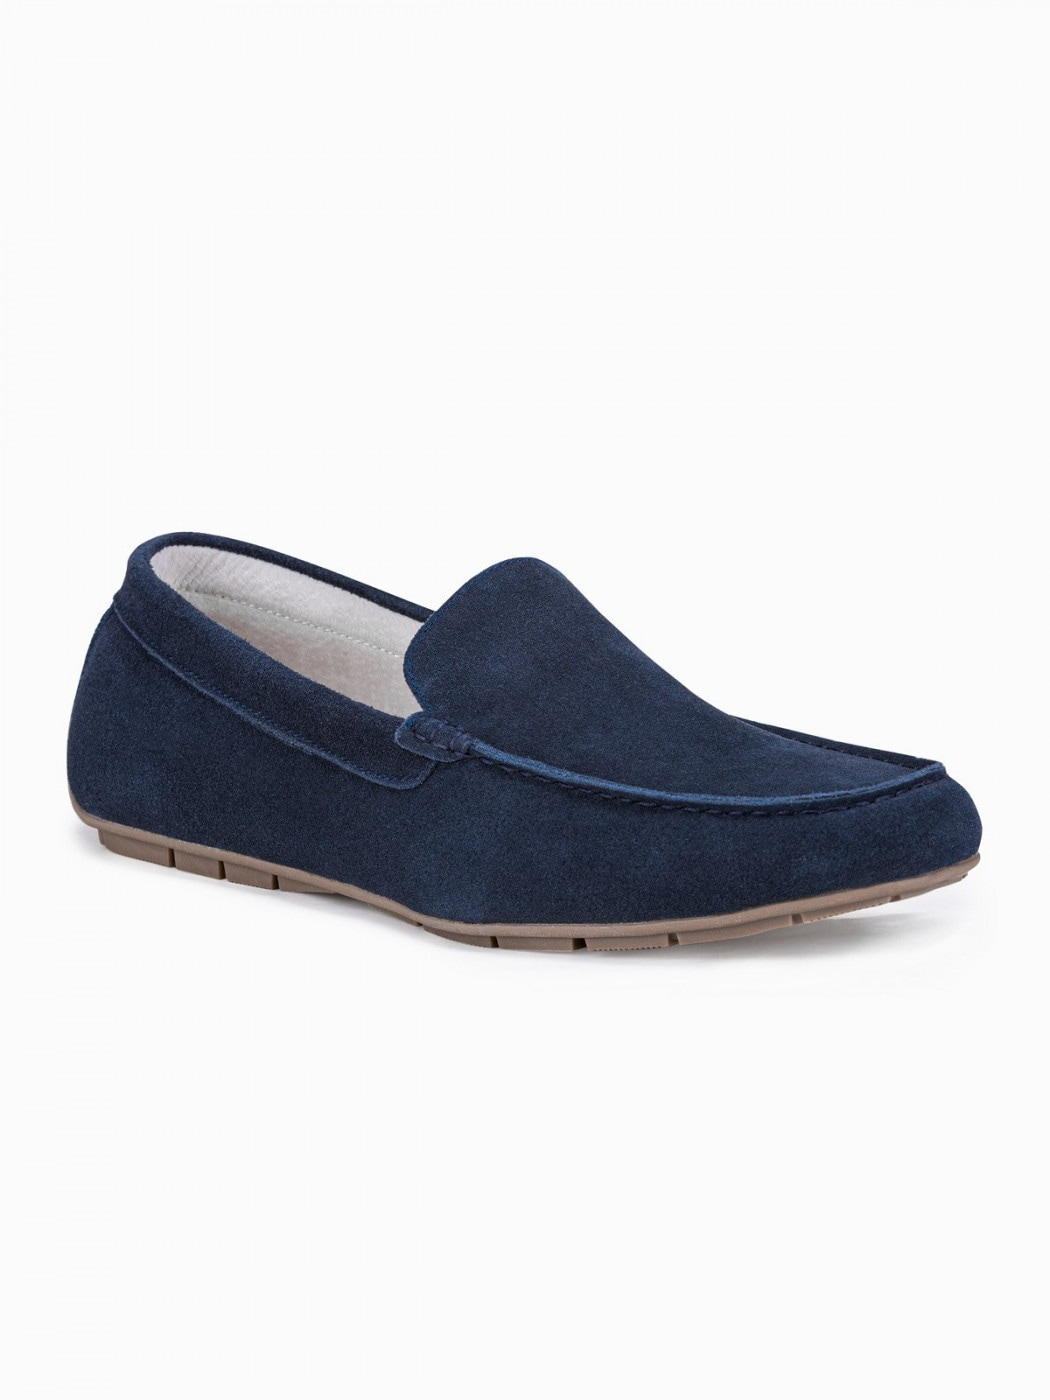 Ombre Clothing Men's moccasing shoes T341